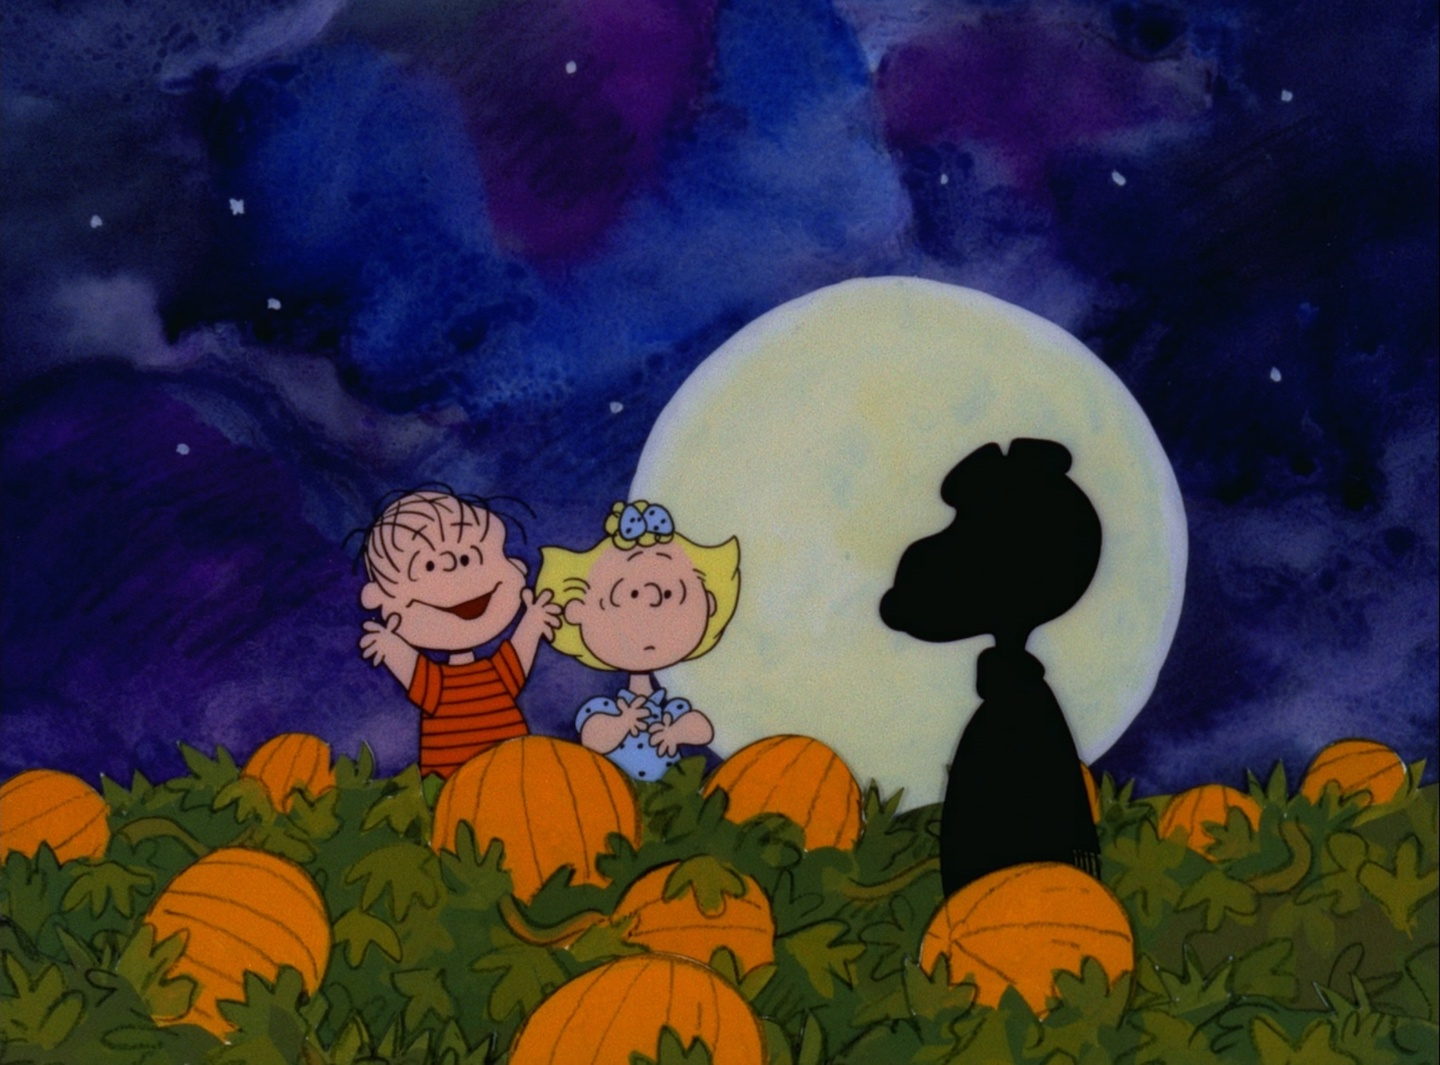 The classic animated Halloween-themed `Peanuts` special, `It's the Great Pumpkin, Charlie Brown,` created by late cartoonist Charles M. Schulz, will air Tuesday, Oct. 22 (8 p.m. EDT), on ABC. (Image ©1966 United Feature Syndicate Inc.)